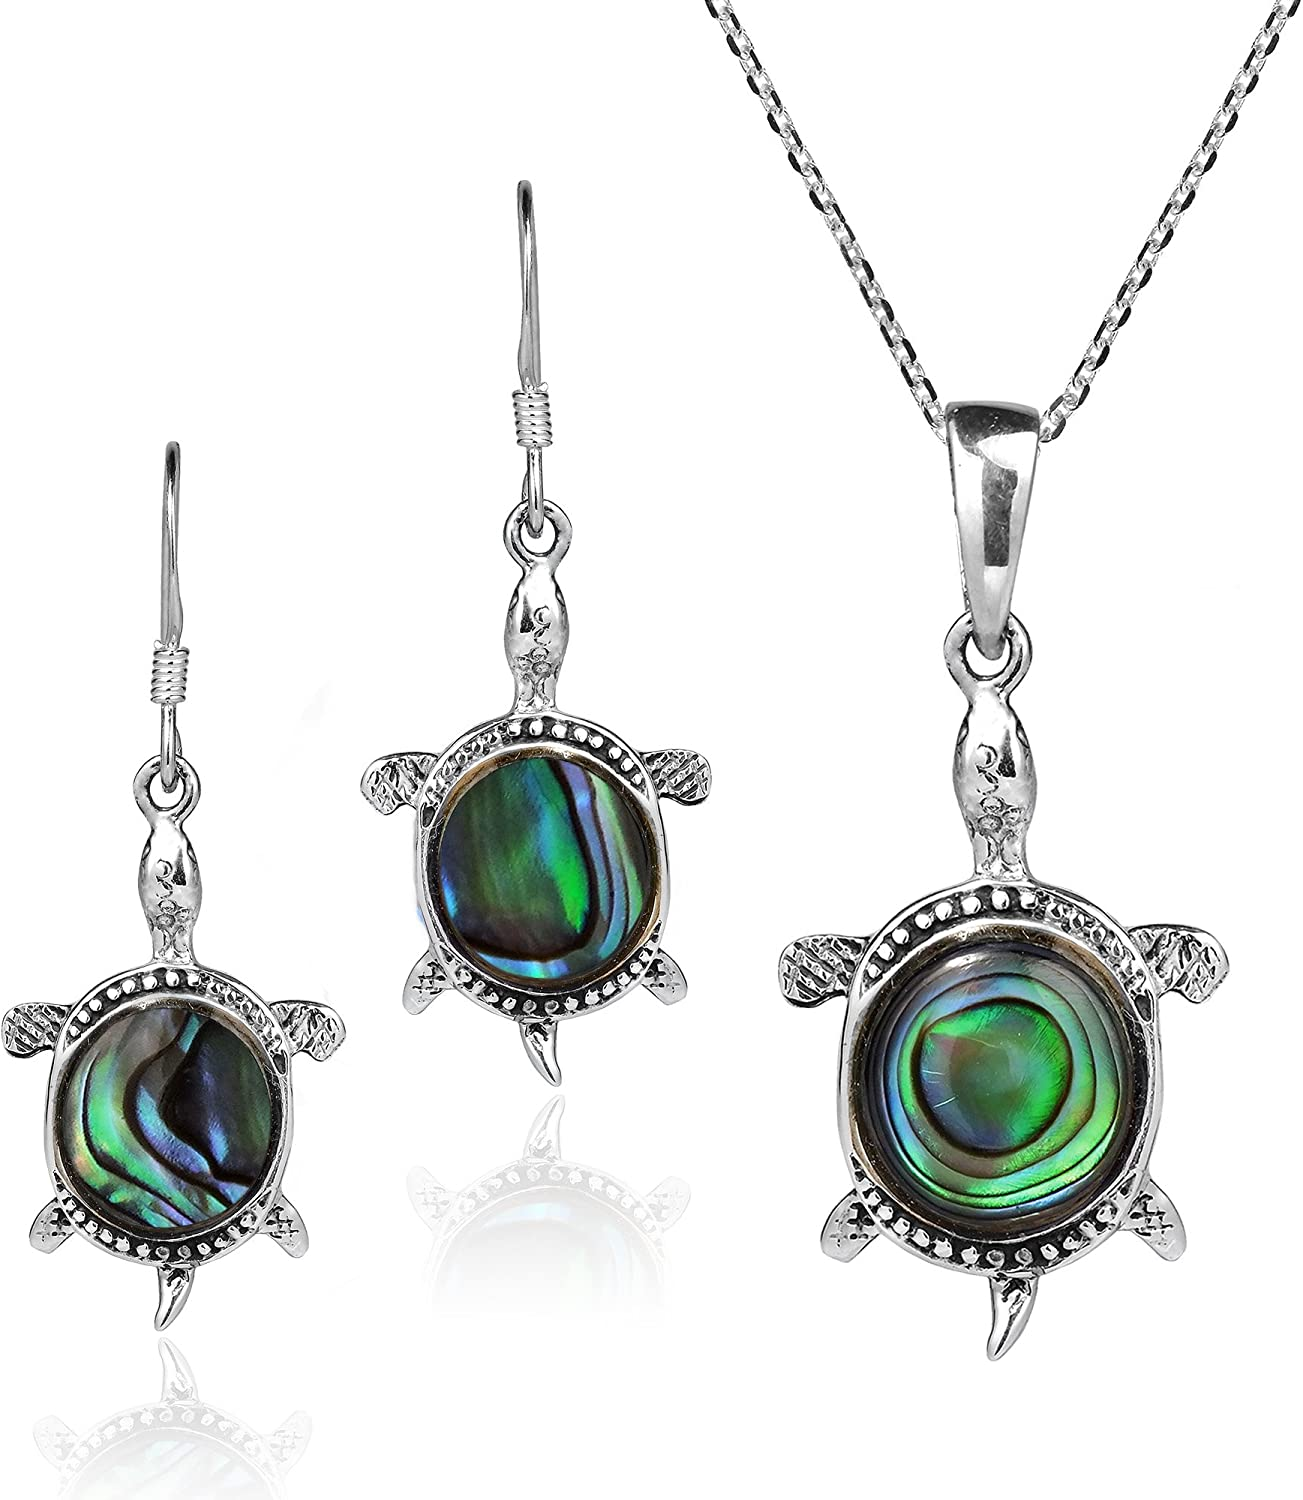 BEAUTIFUL NEW Genuine Abalone Earring and Pendant Set in Sterling Silver